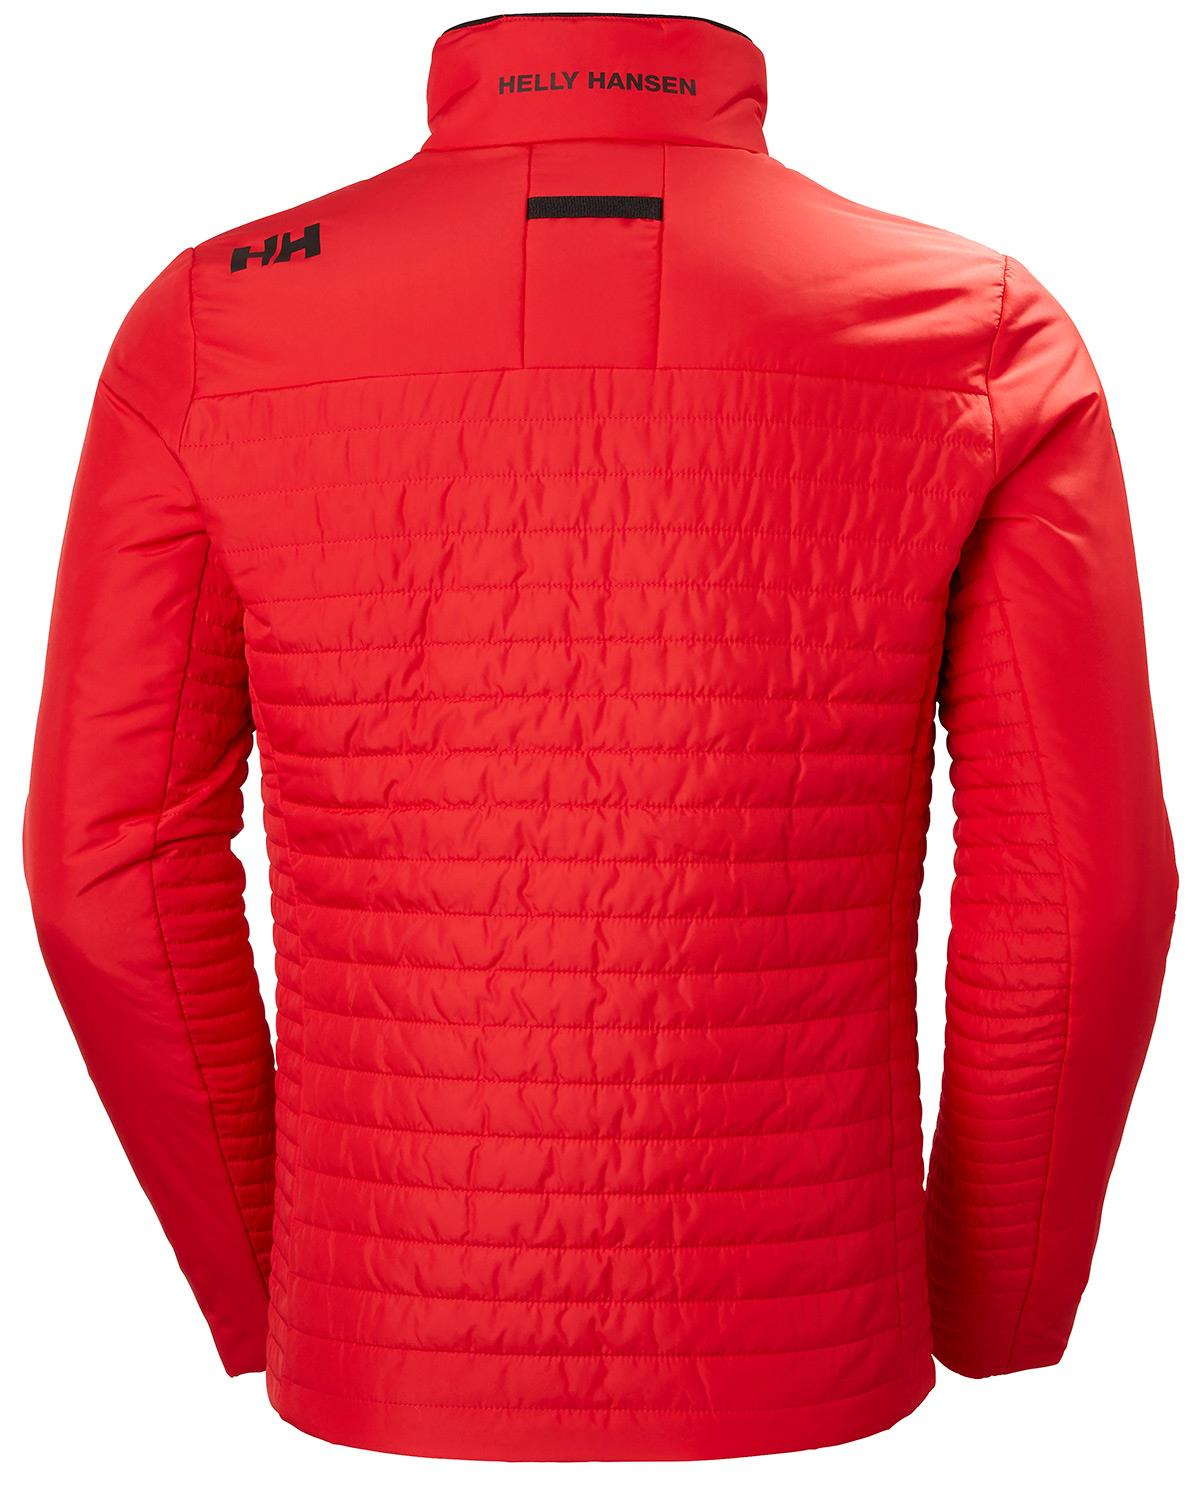 Helly Hansen HH CREW INSULATOR JACKET